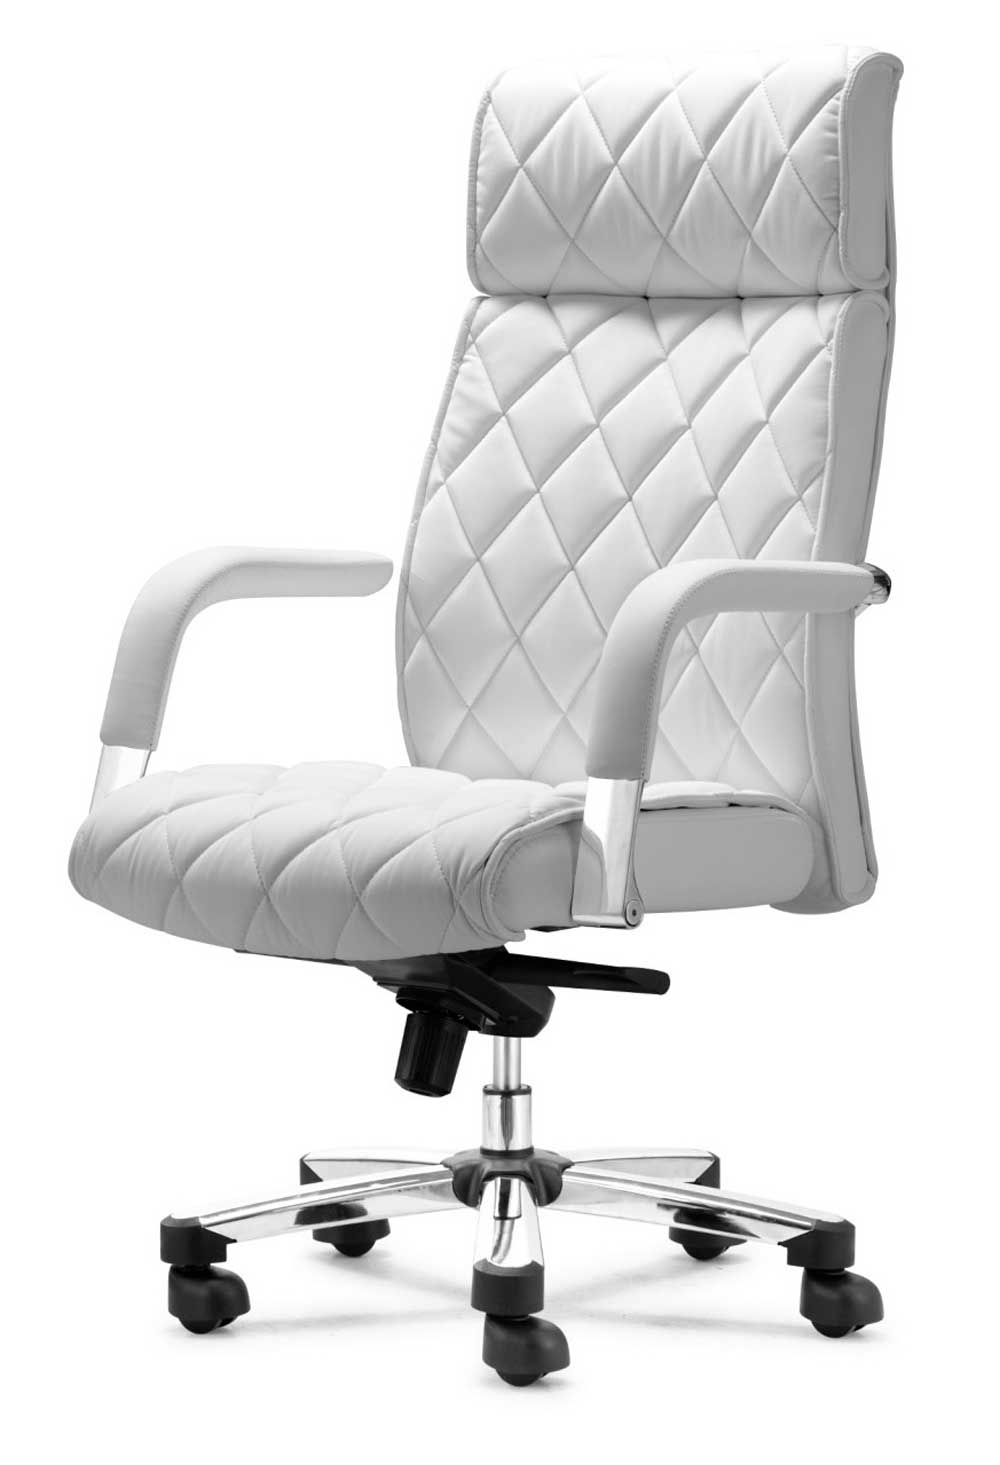 Chairs : Home Office Furniture Office Chairs Online Ergonomic Desk Intended For Recent High End Executive Office Chairs (View 11 of 20)